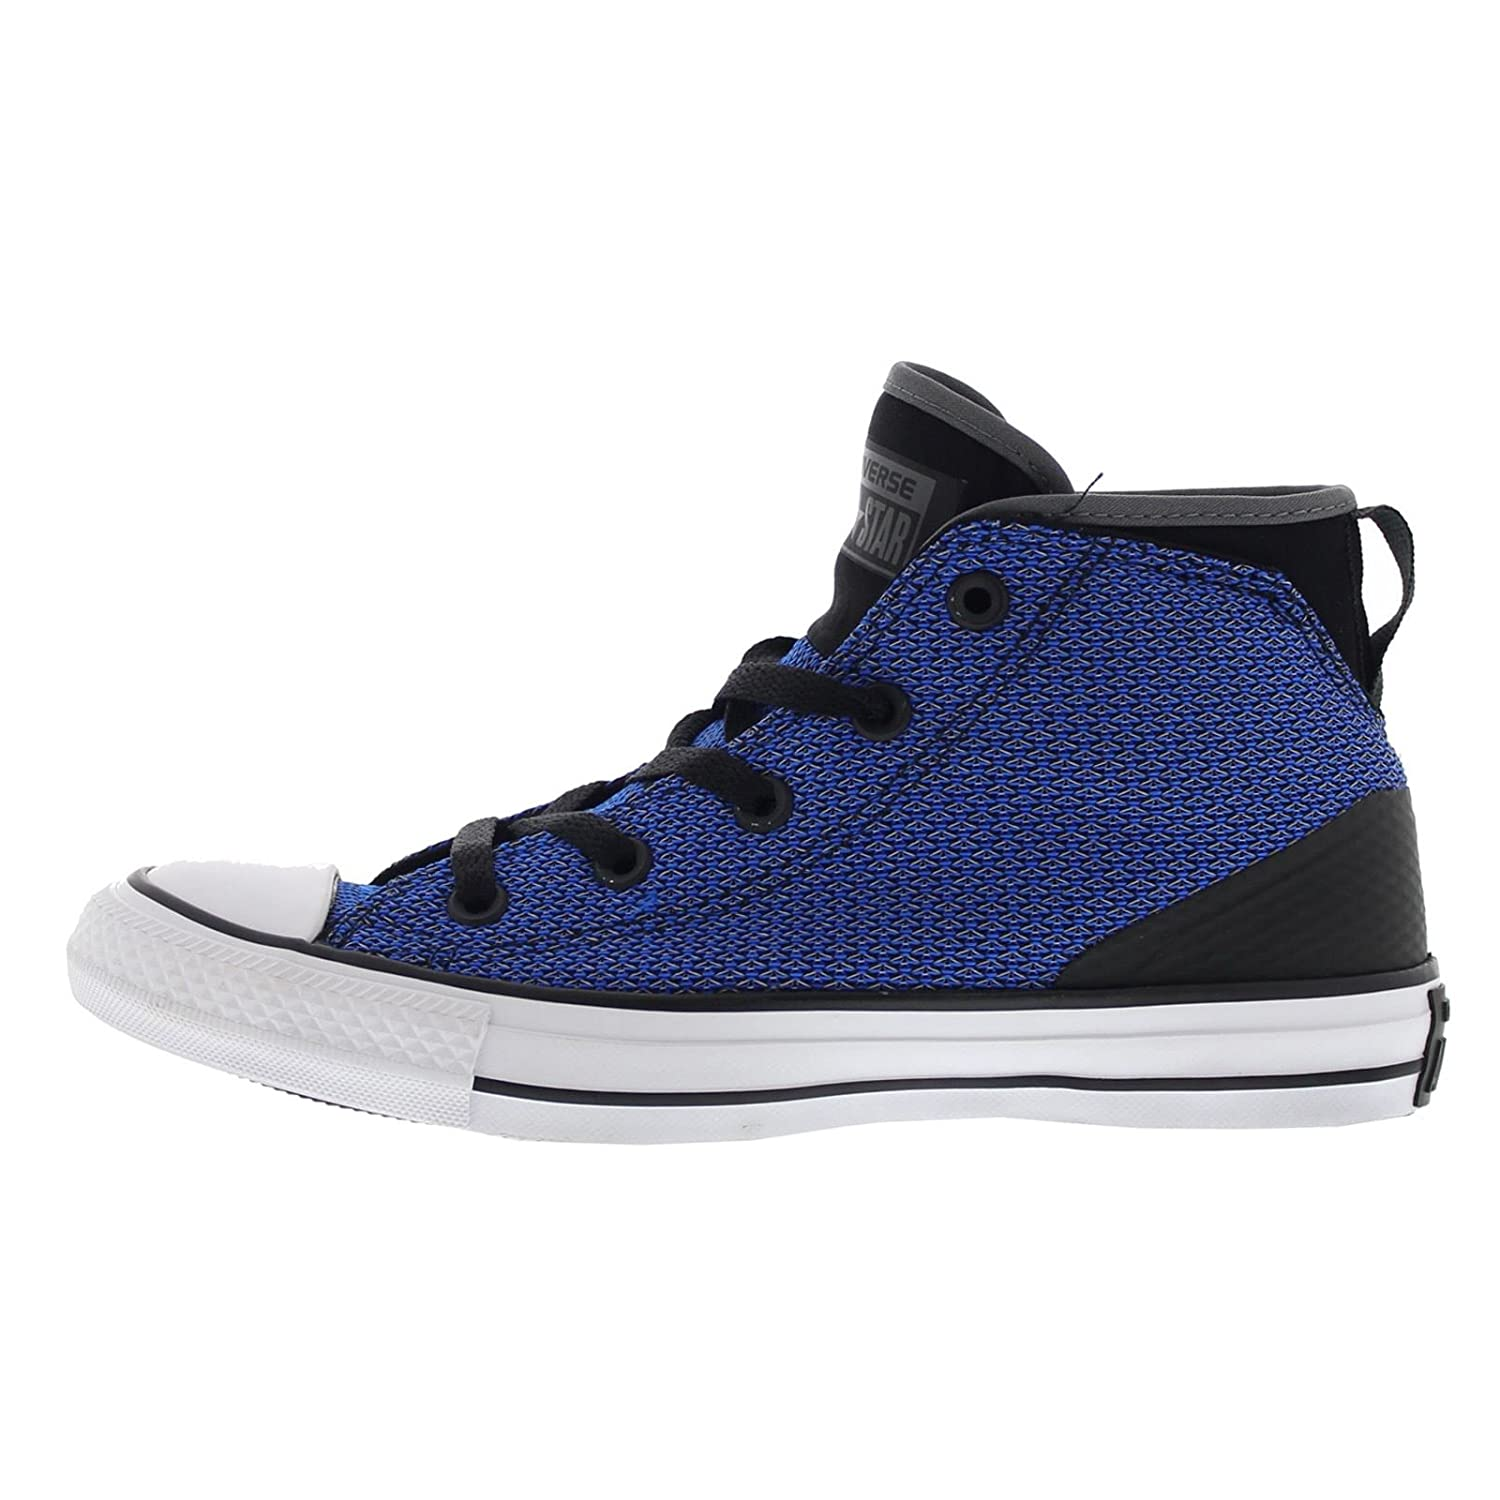 Converse Womens Chuck Taylor All Star Syde Street Mid Black Blue Mesh Trainers 5.5 UK X14BxvOPr